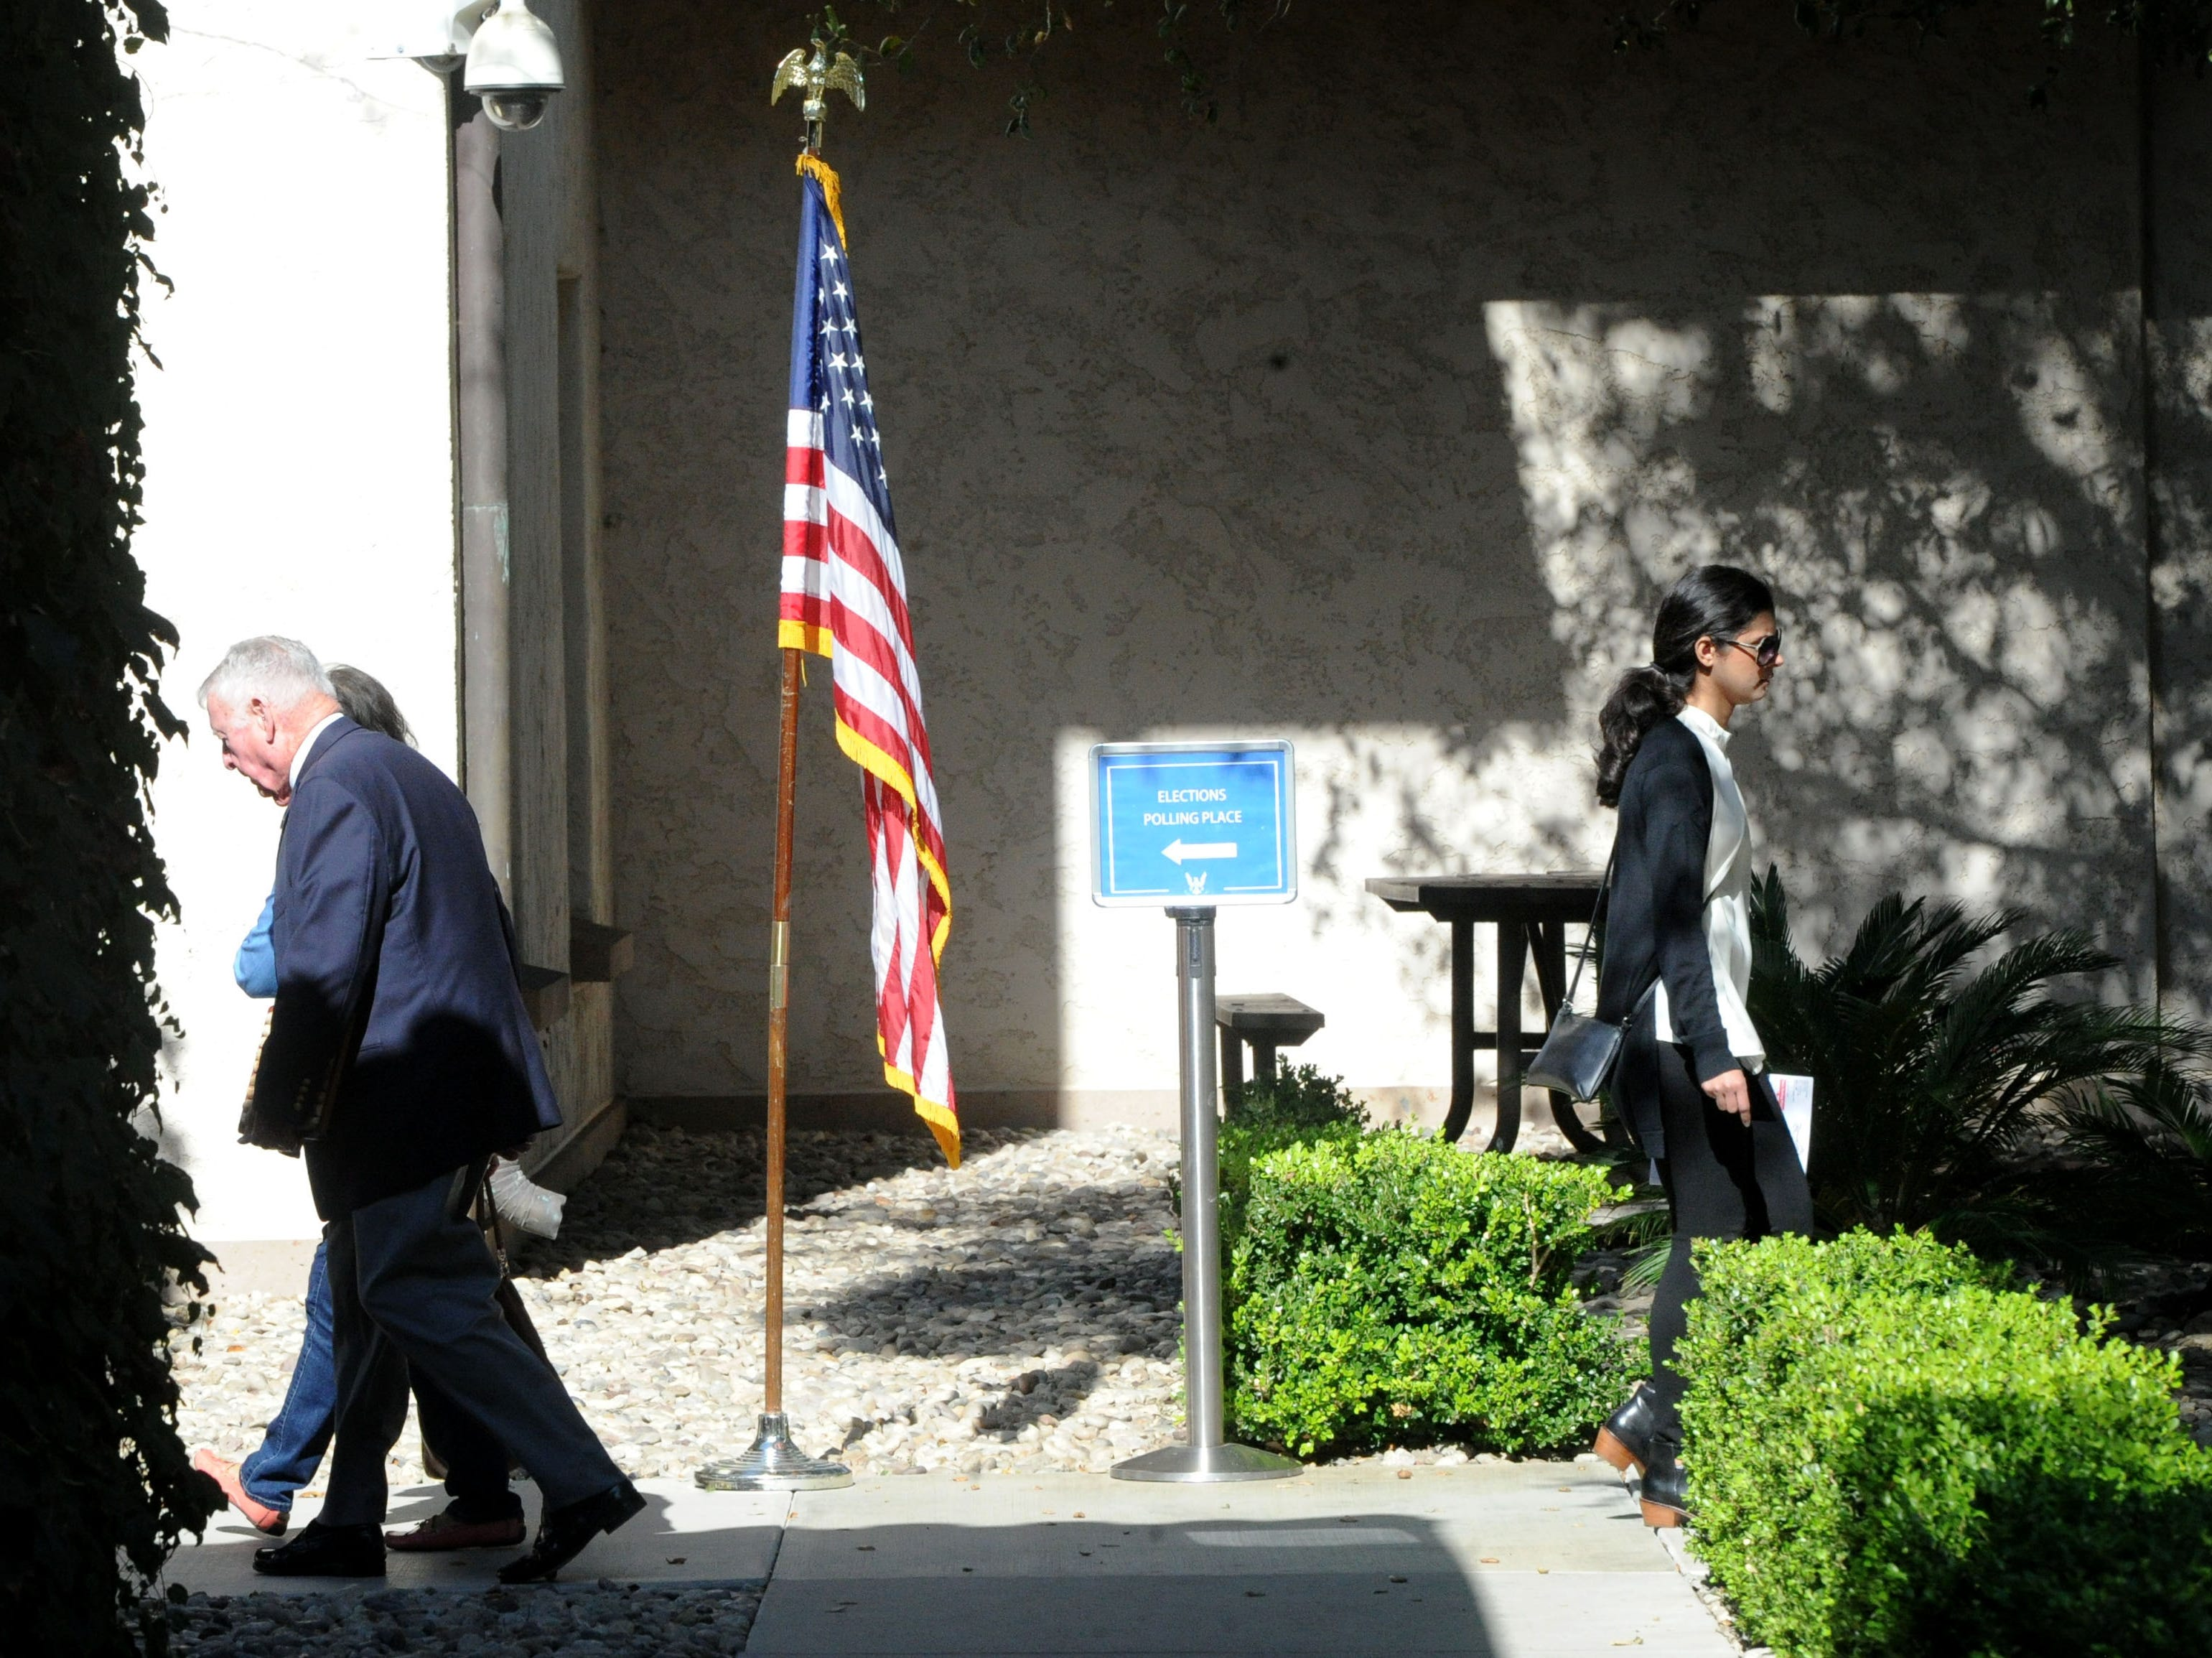 People make their way to the Ronald Reagan Presidential Library & Museum in Simi Valley on Tuesday. The library was a polling location.